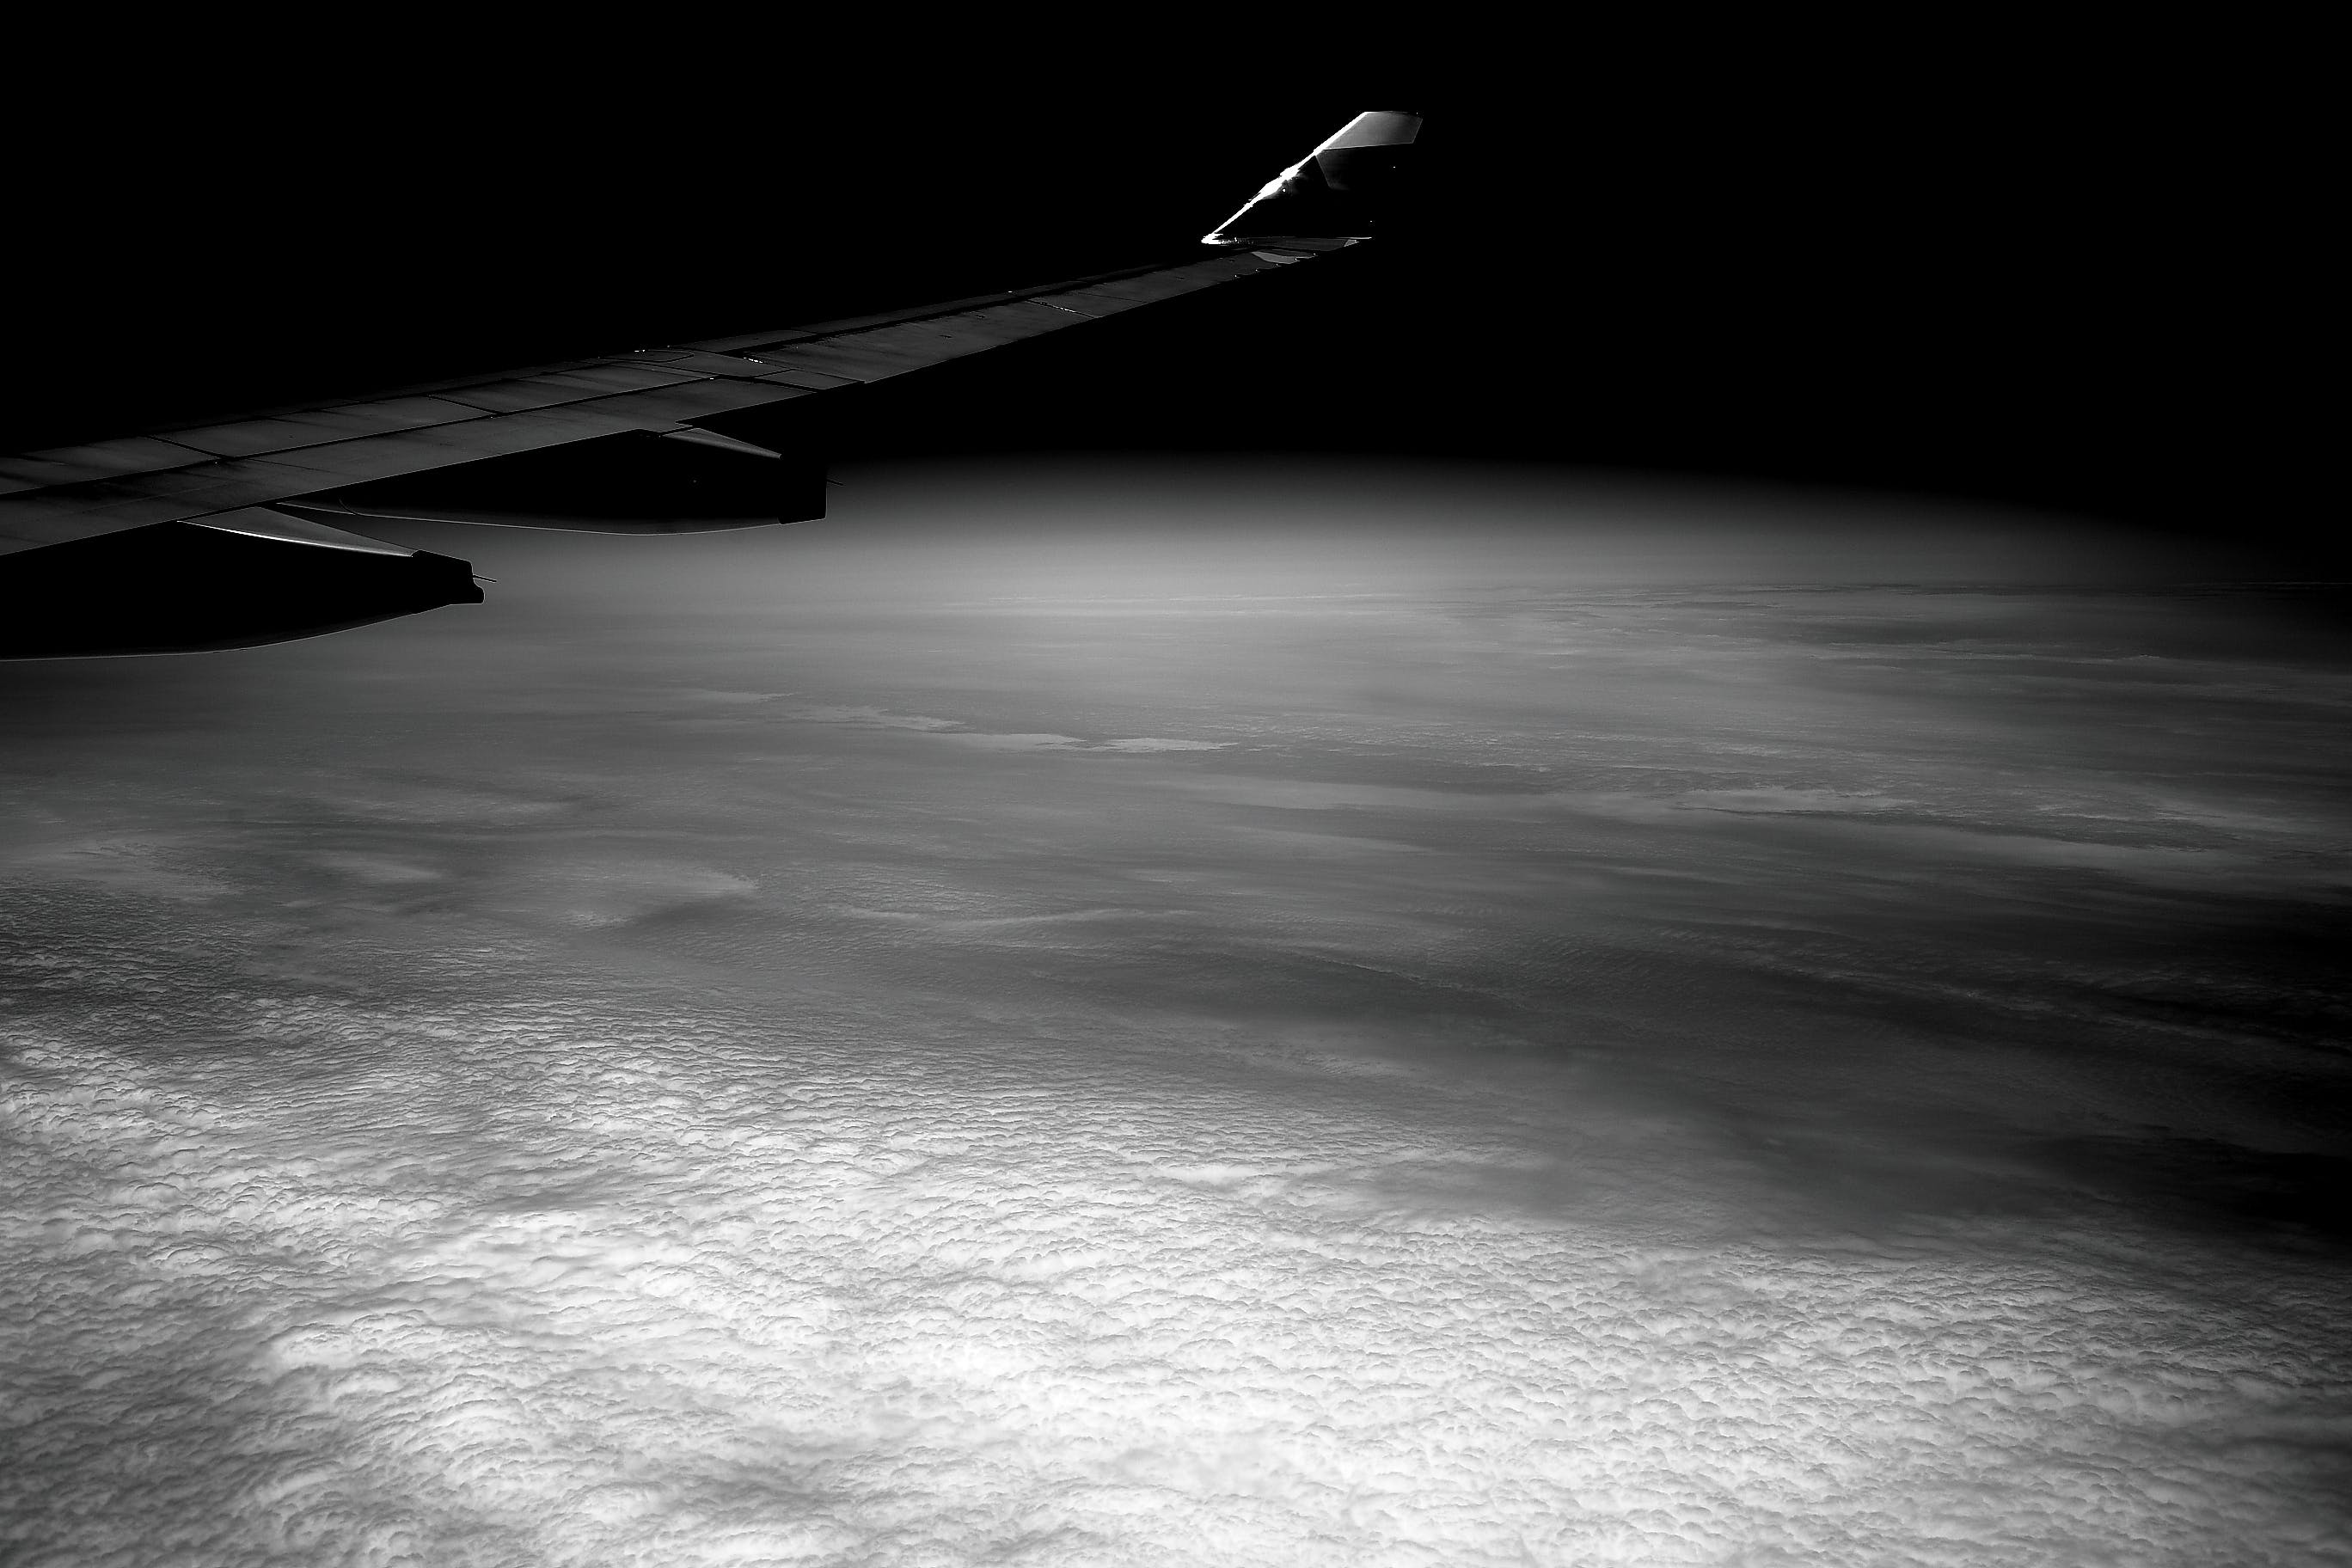 Airplane Wing in Gray Scale Photohraphy